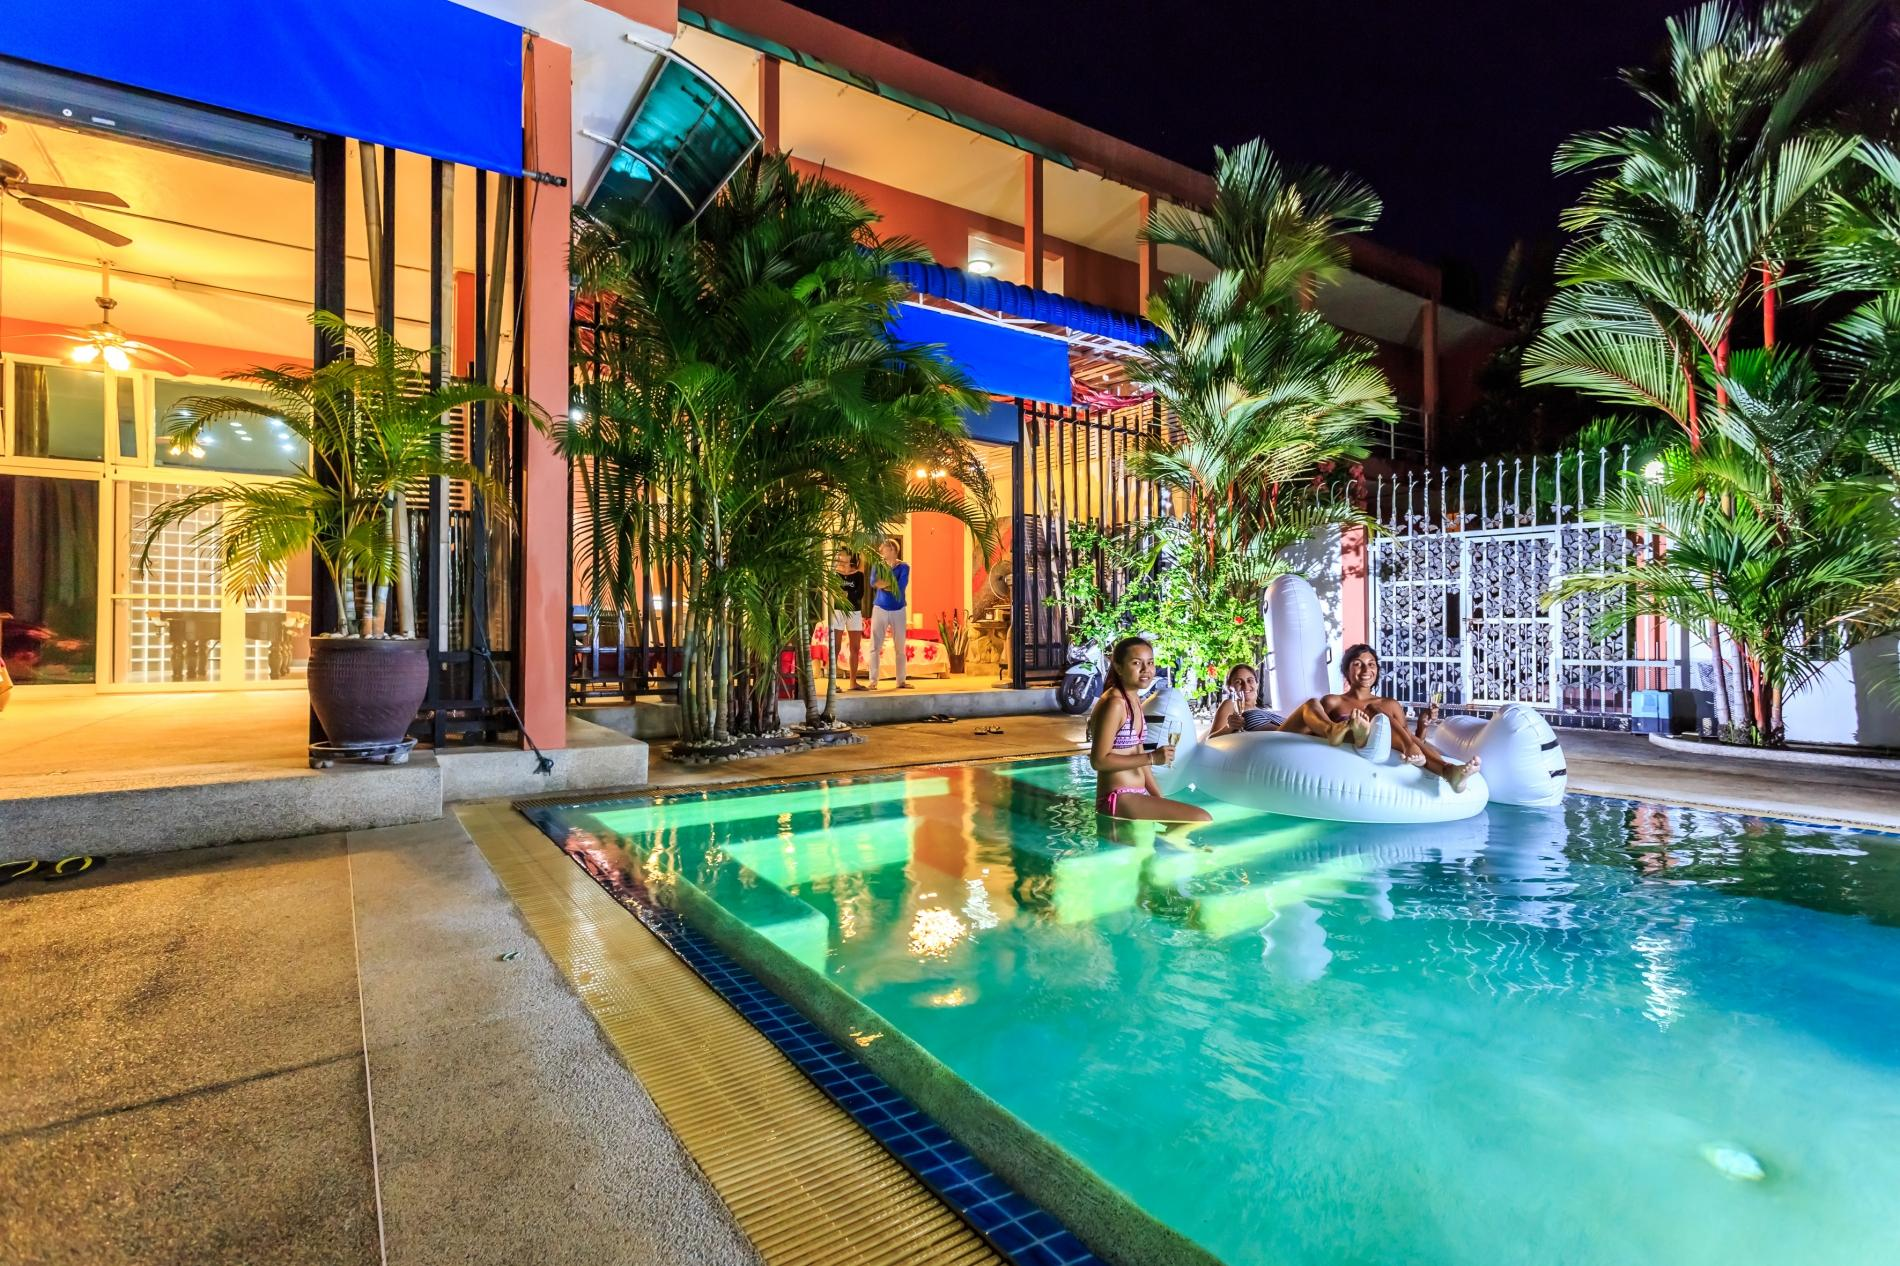 Apartment Jungceylon villa - Private swimming pool and billiards in the heart of Patong photo 20320492